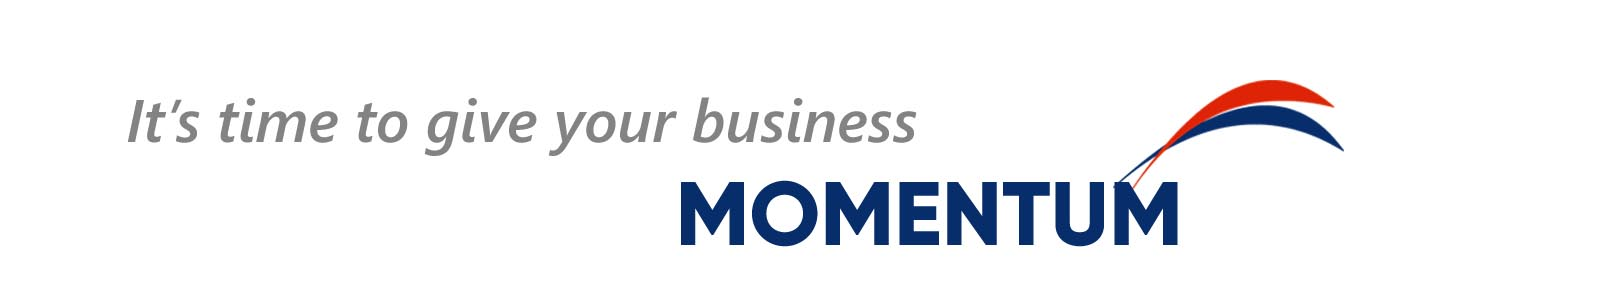 Give your business Momentum